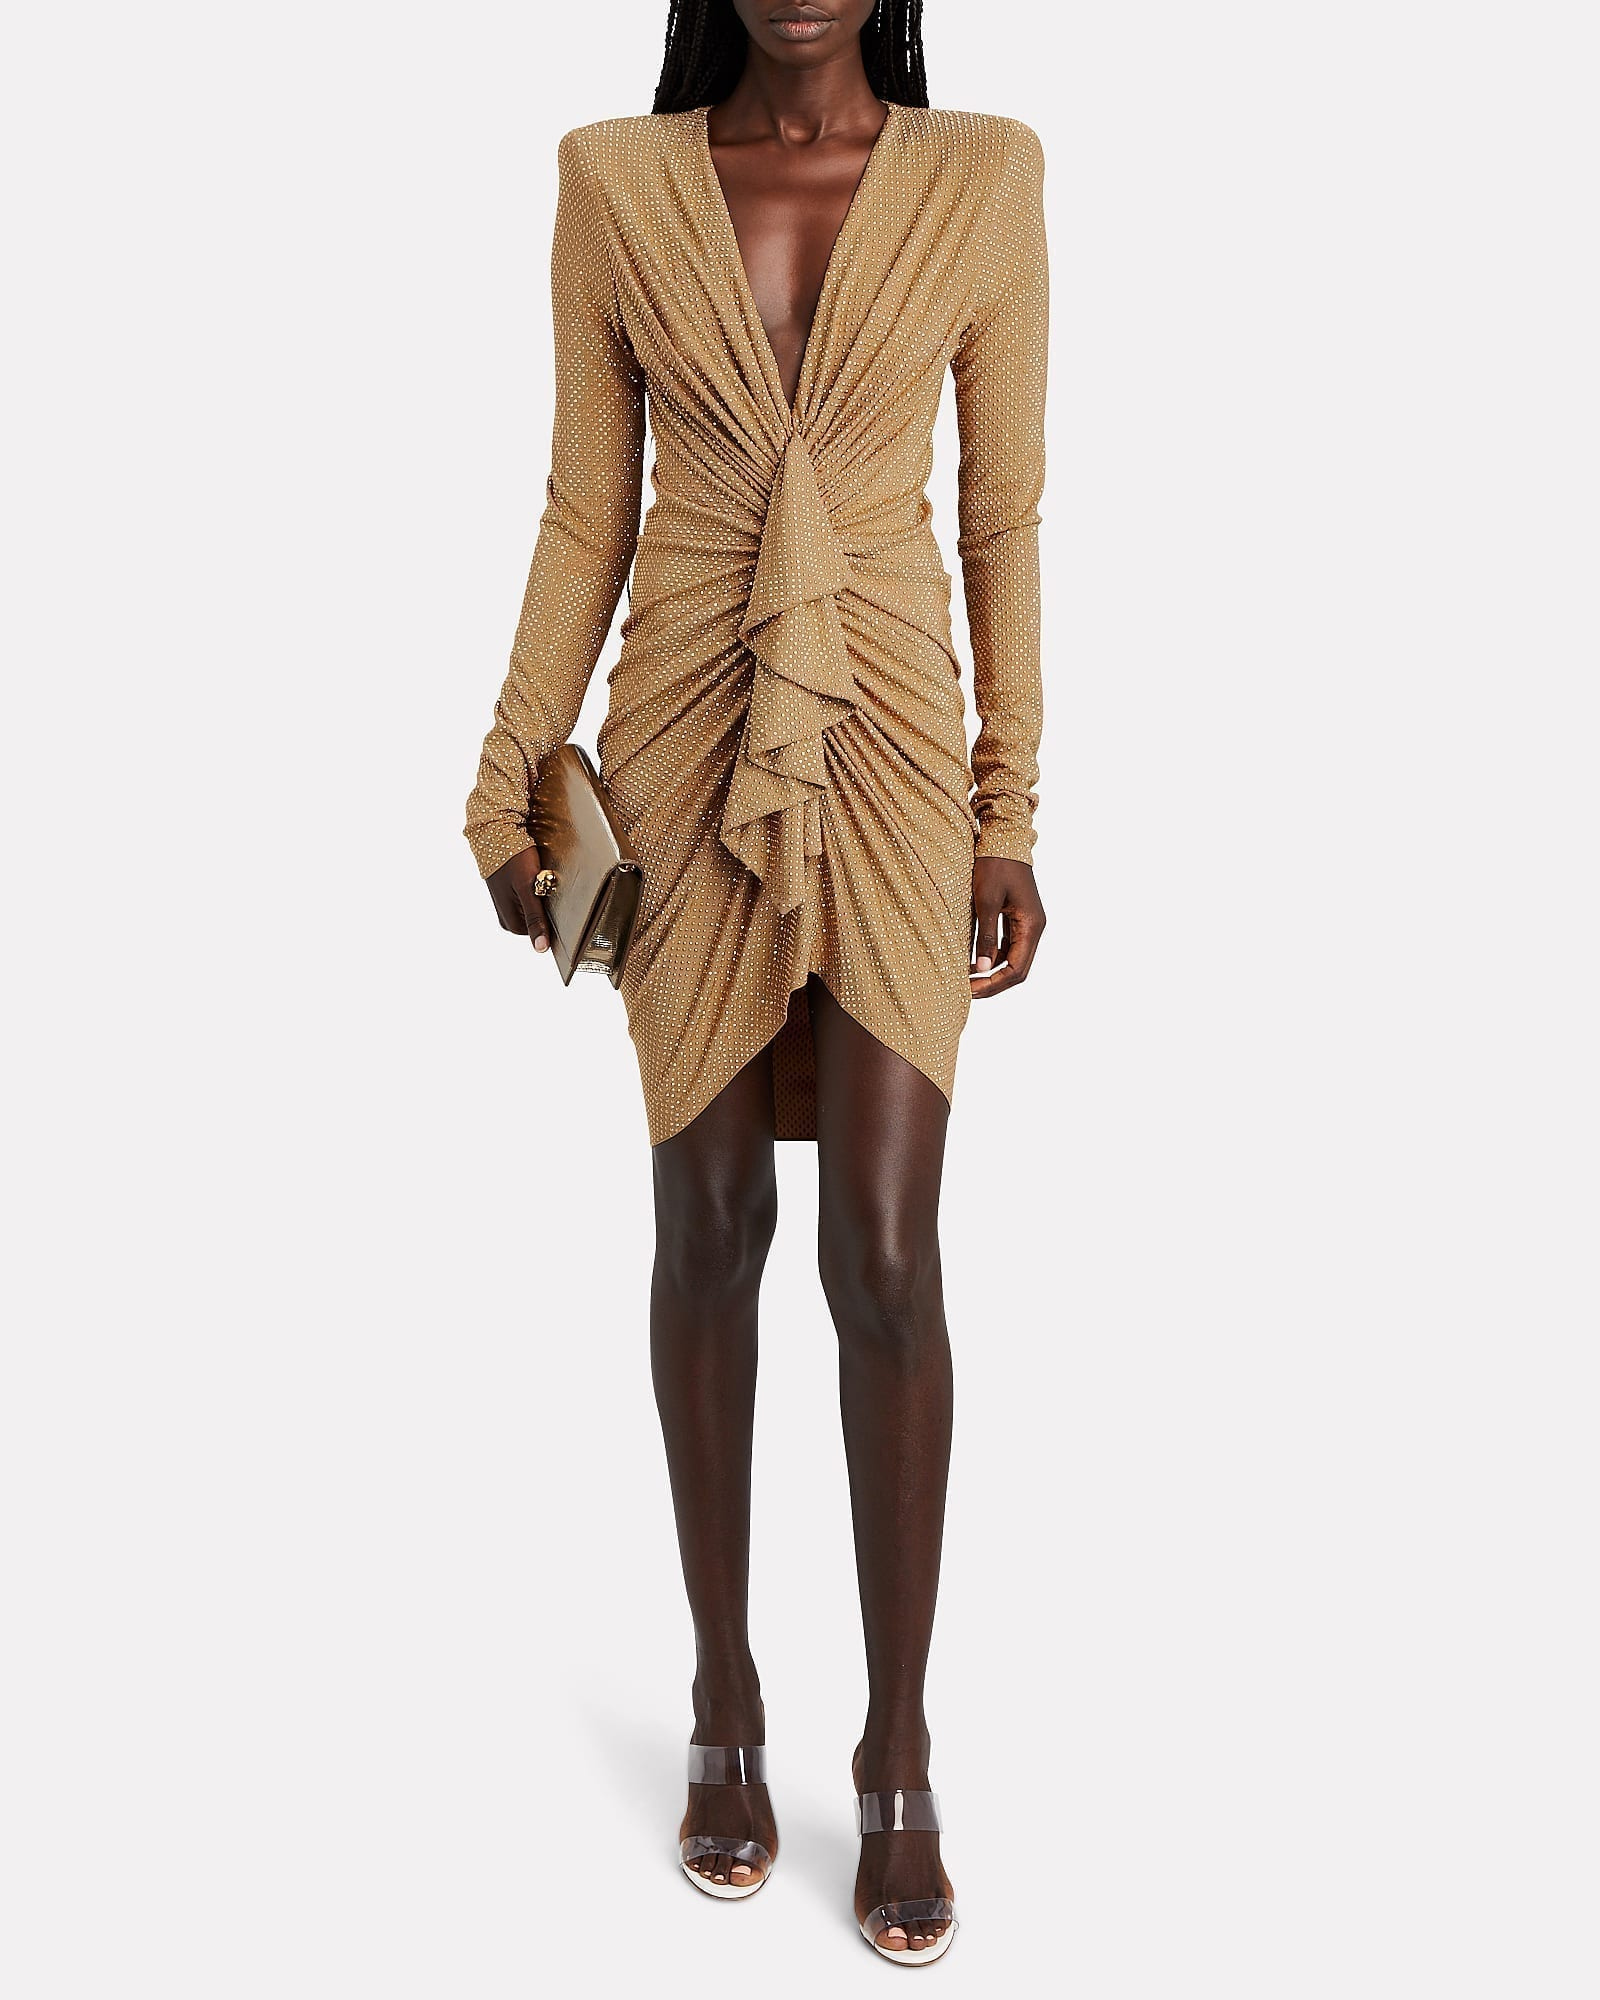 ALEXANDRE VAUTHIER Ruffled Crystal Jersey Mini Dress